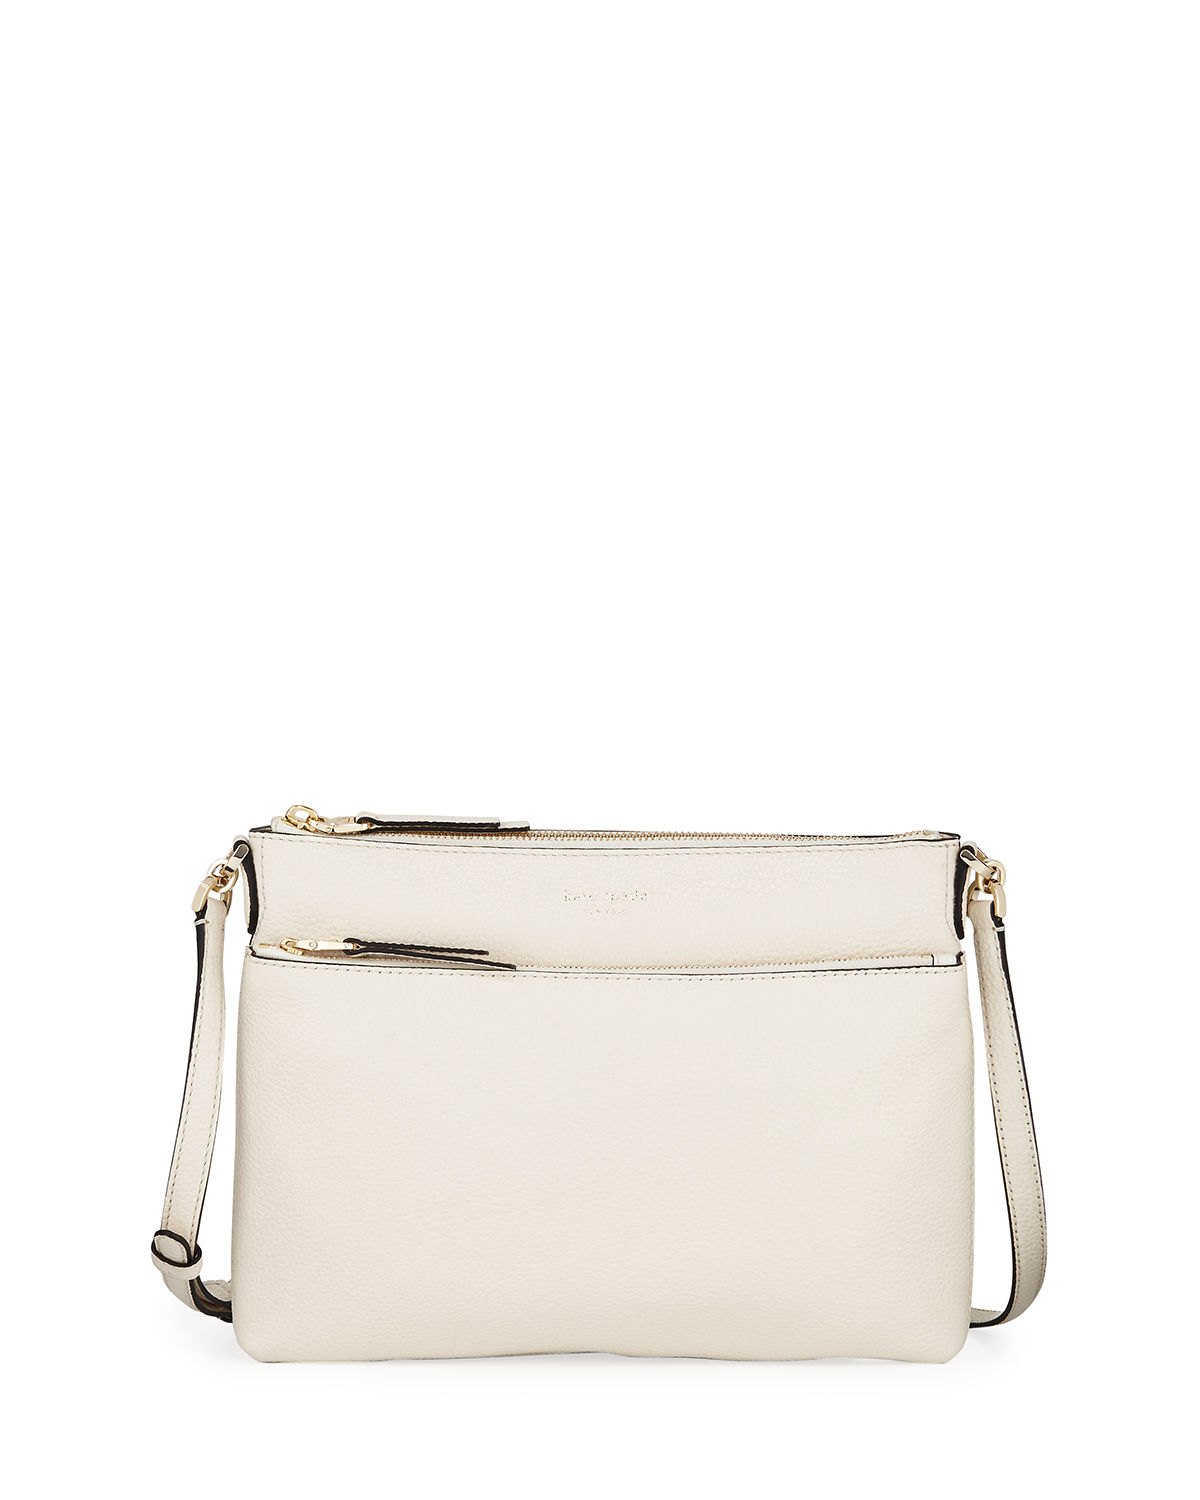 ec22a80d7c7b kate spade new york polly medium crossbody bag